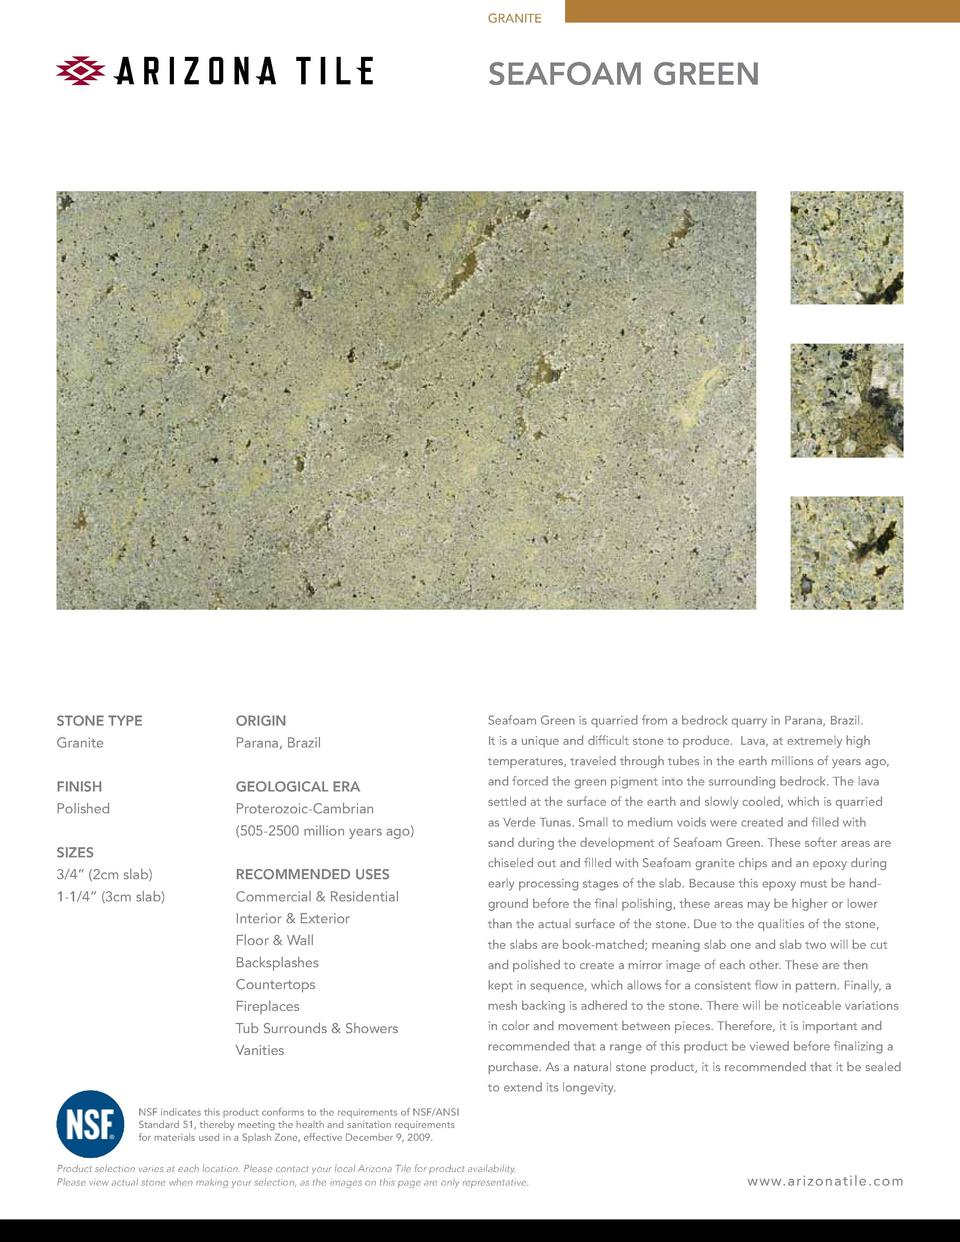 GRANITE  SEAFOAM GREEN  STONE TYPE  ORIGIN  Seafoam Green is quarried from a bedrock quarry in Parana, Brazil.  Granite  P...